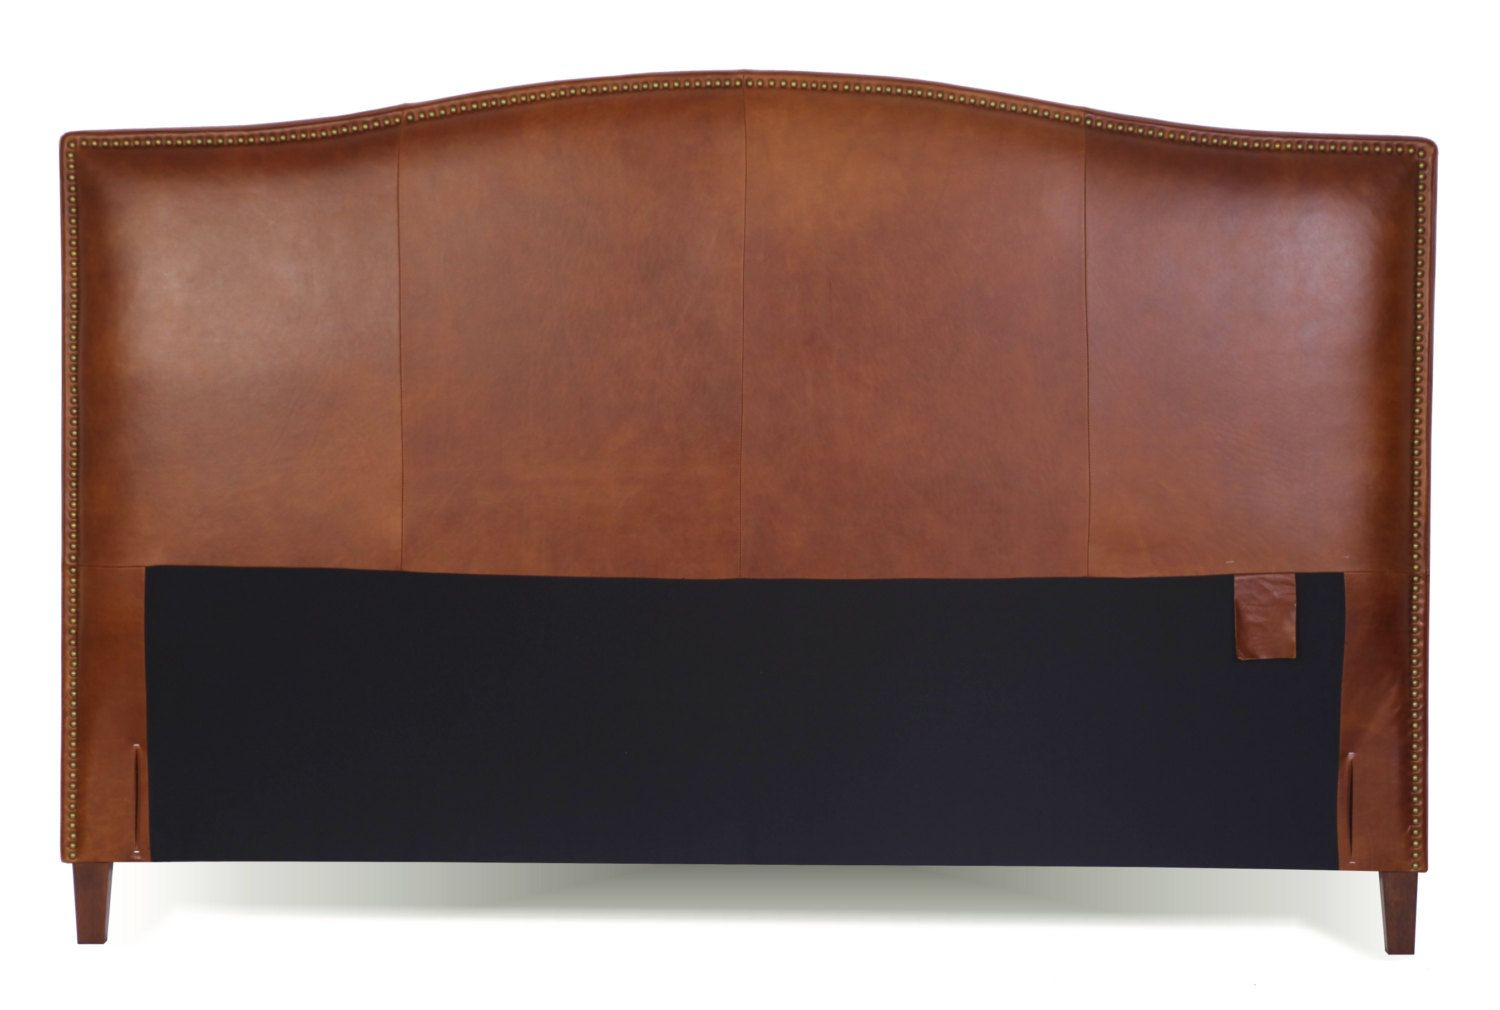 King Size Tobacco brown Leather headboard for Bed with Brass Nail ...